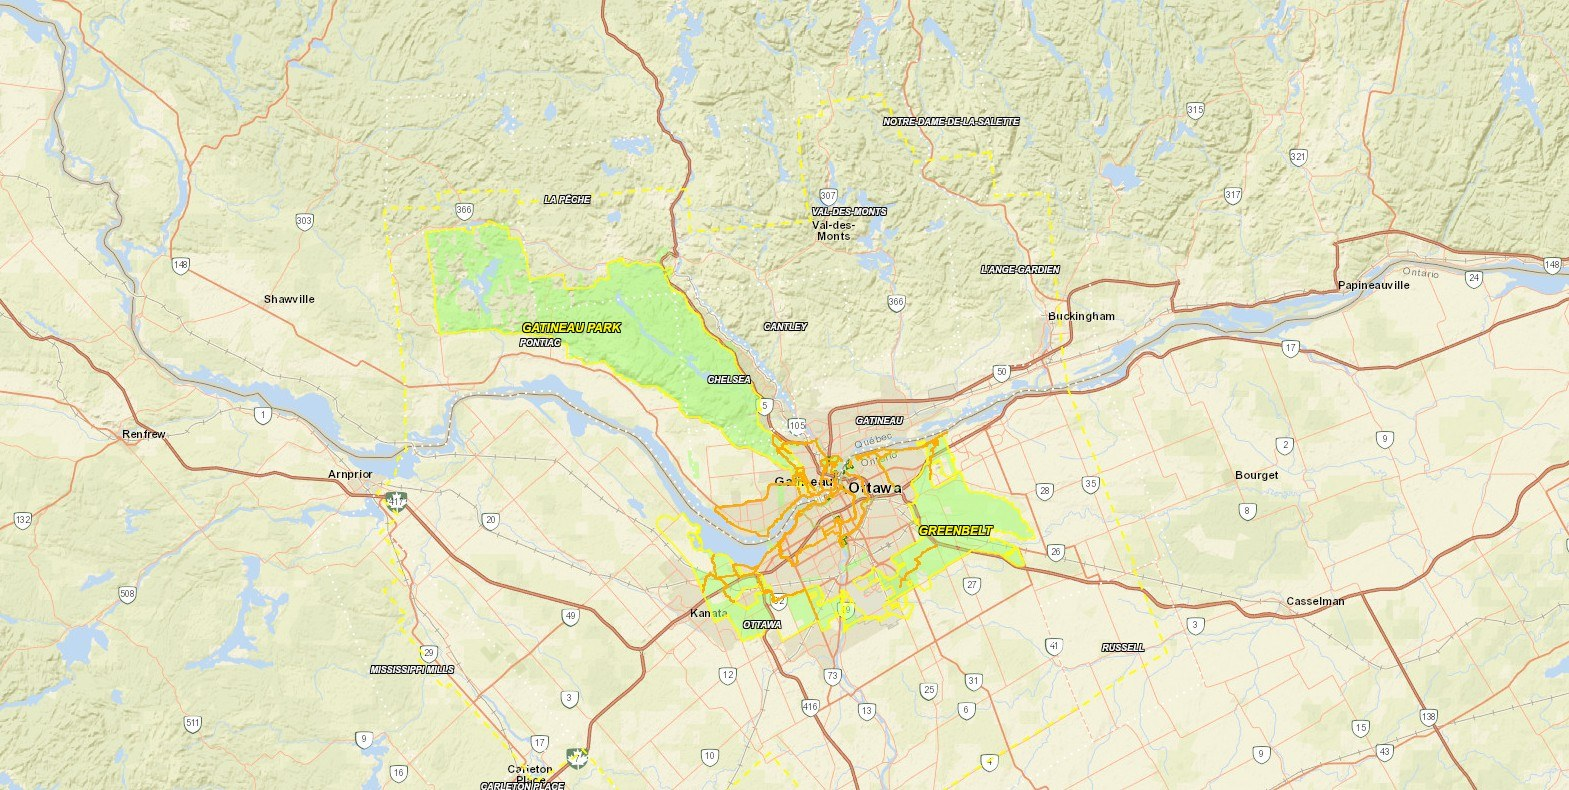 National Capital Map